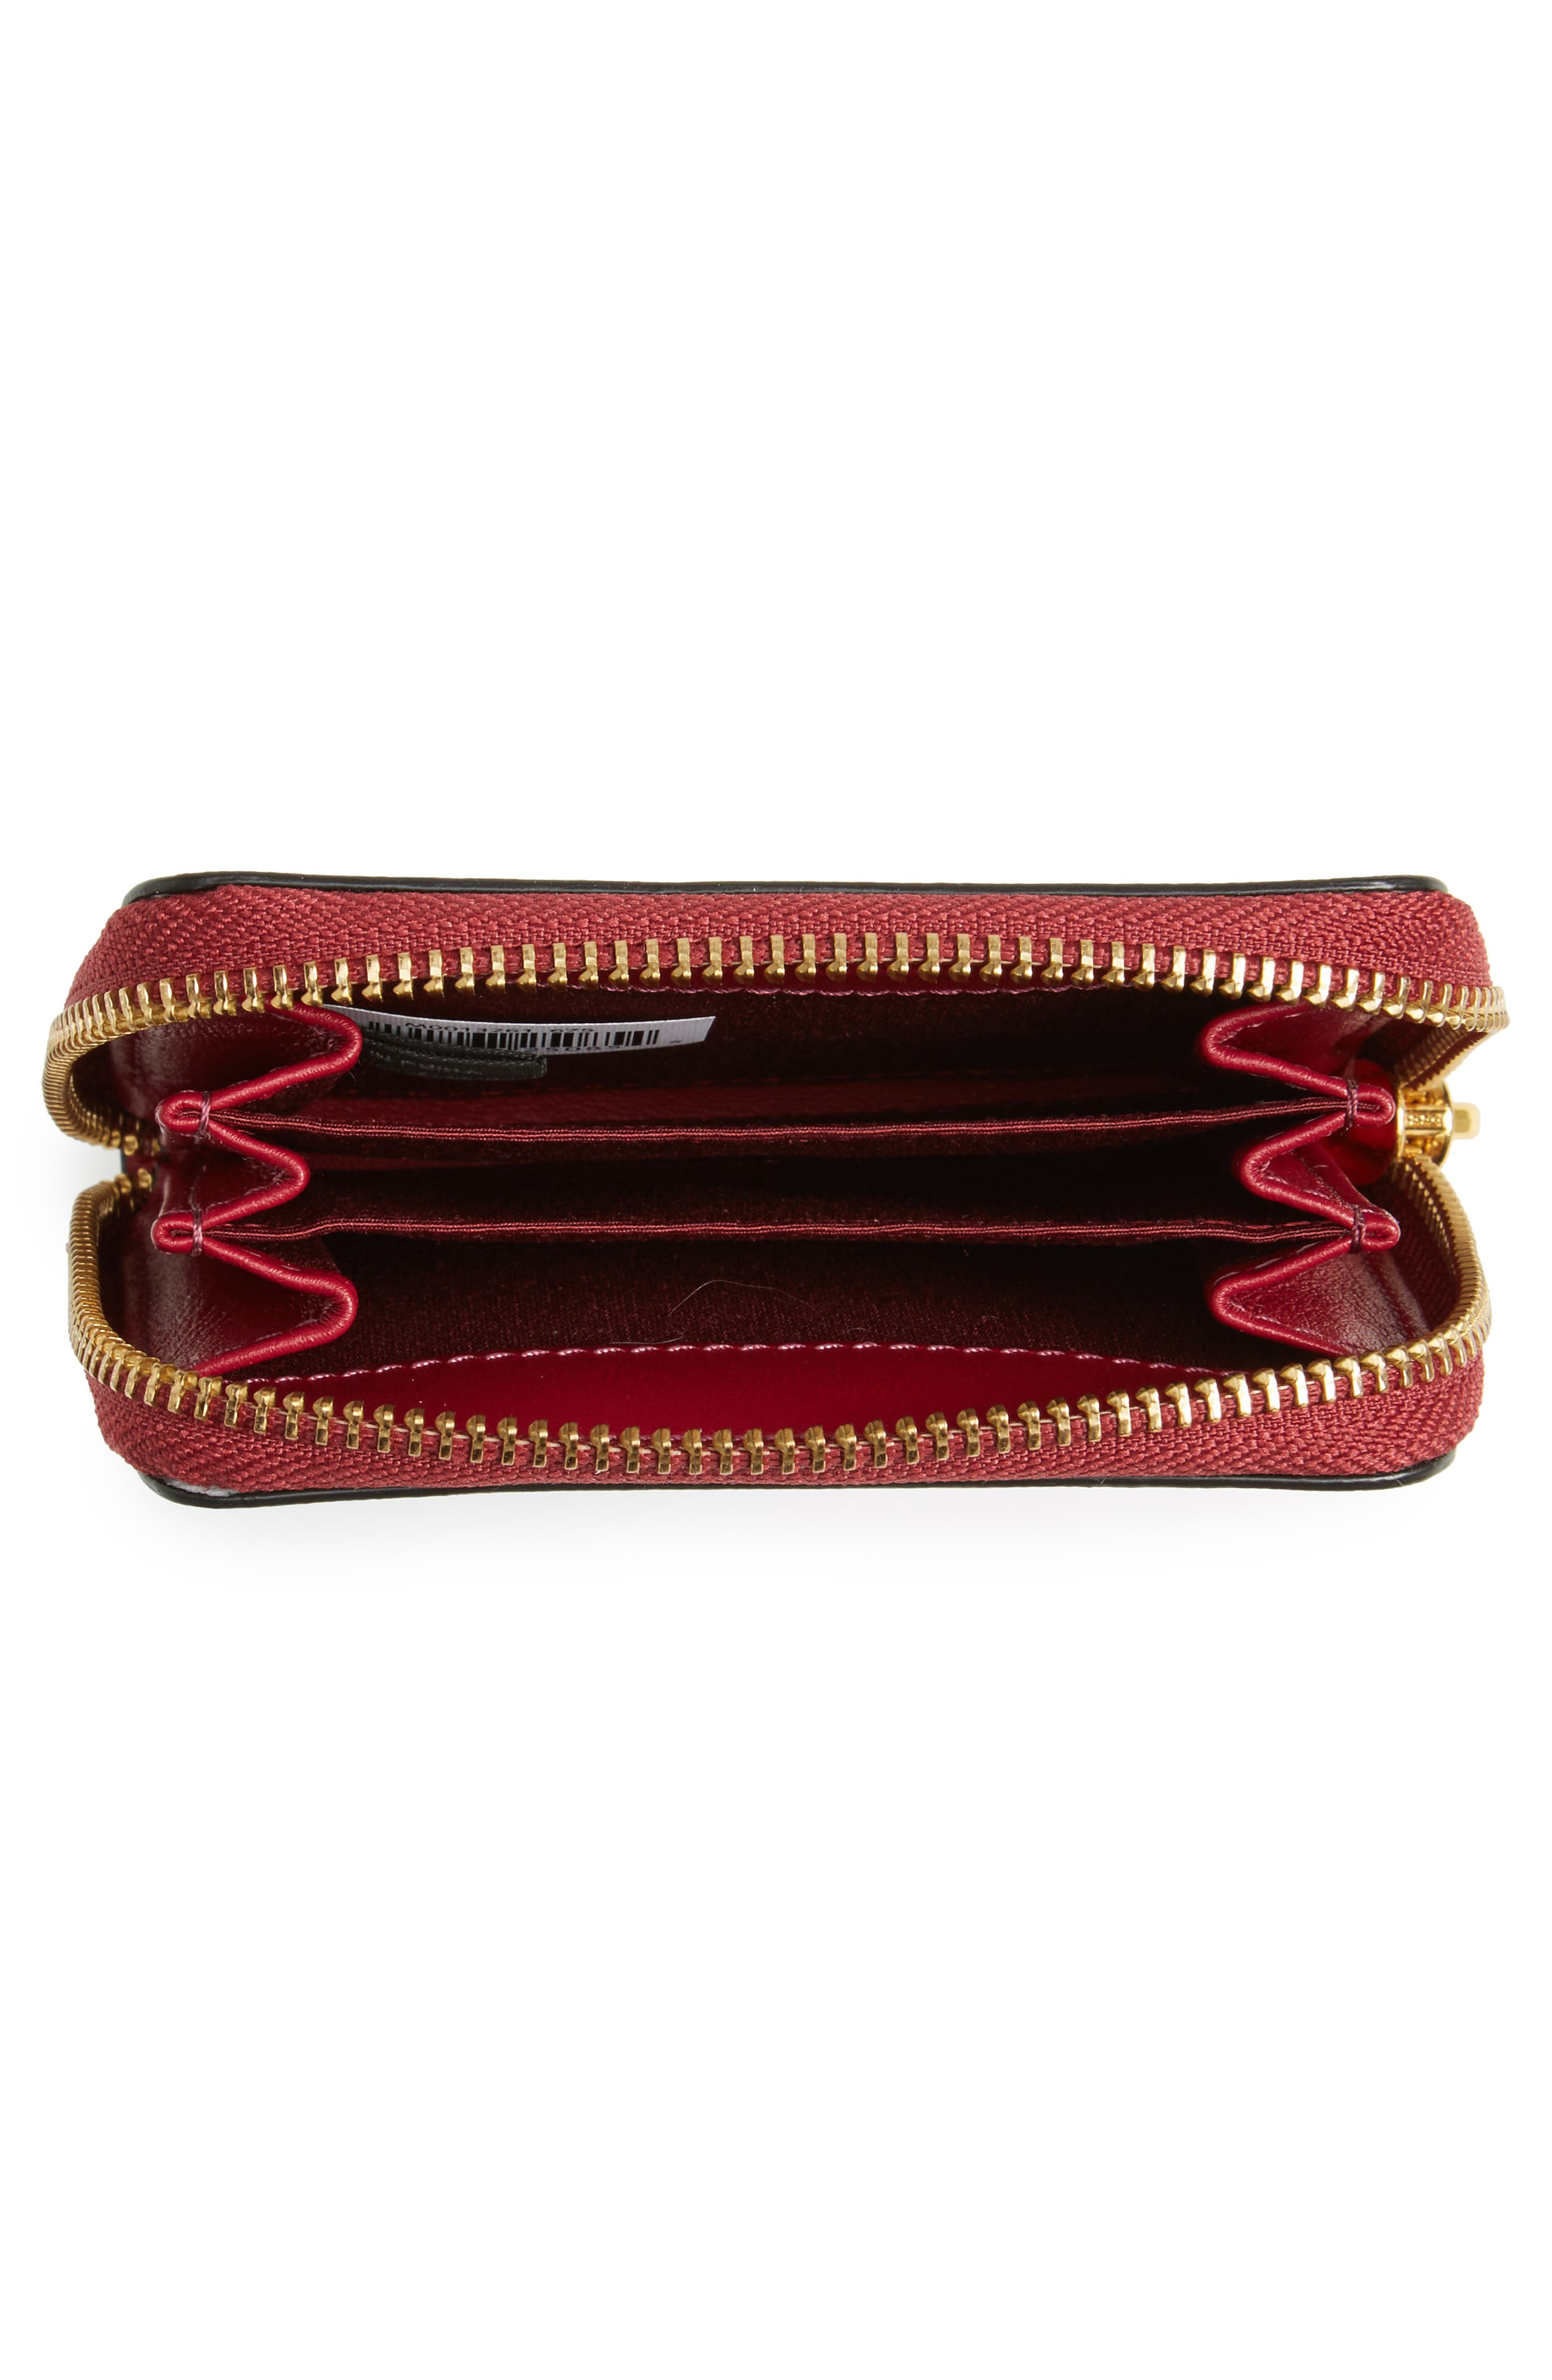 Lips Saffiano Leather Zip Around Wallet,                             Alternate thumbnail 2, color,                             675